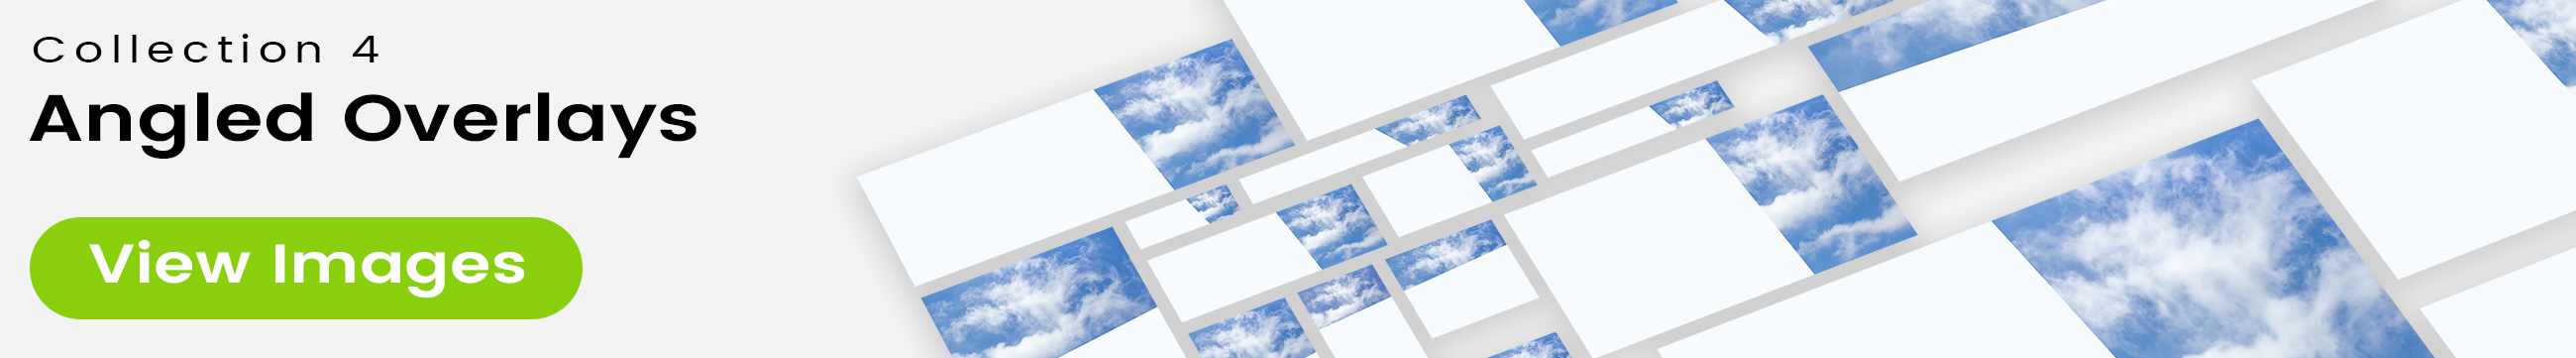 See 25 bonus images included with clouds stock image 9481. Collection 4 of 4 features an angled overlay design customized with a color that complements each photo.